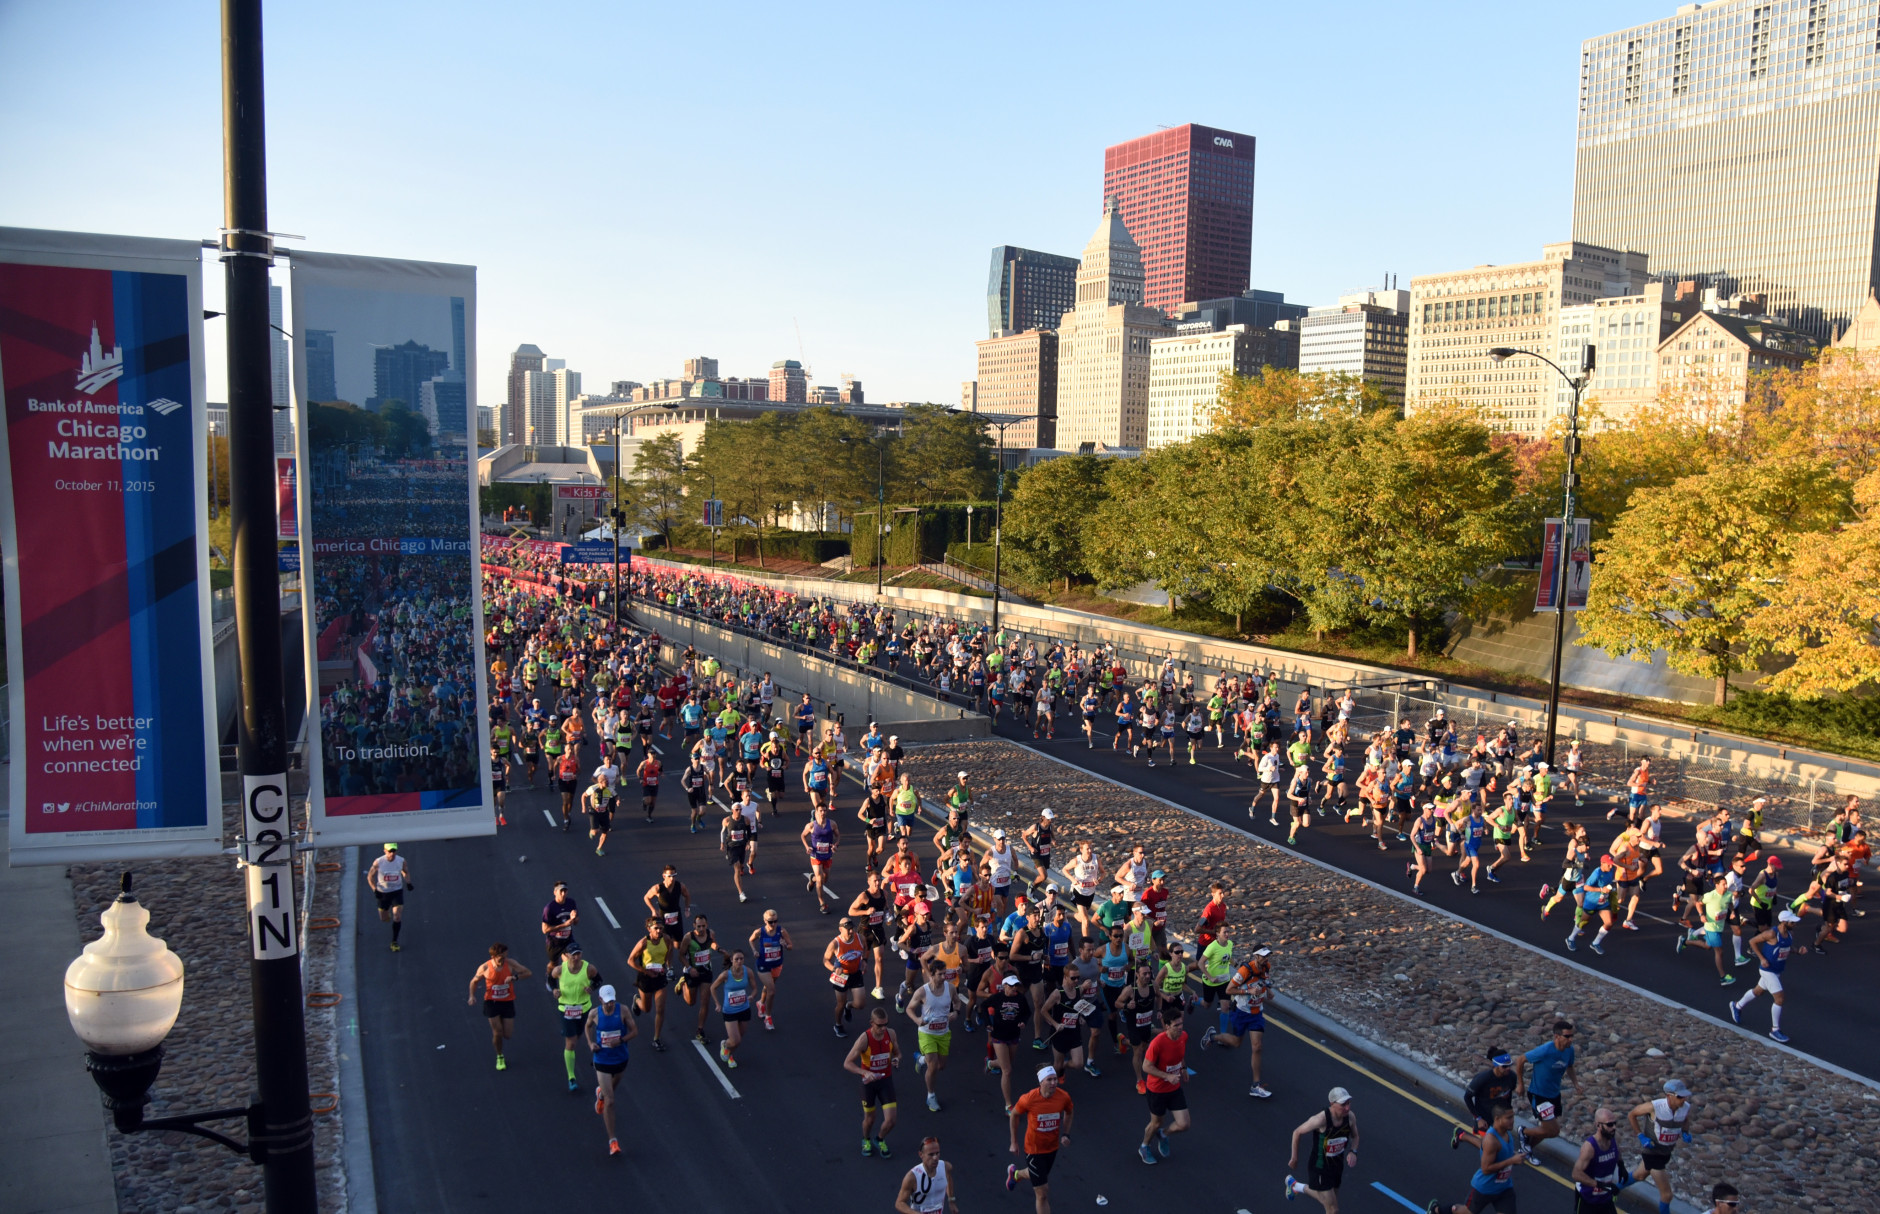 CHICAGO, IL - OCTOBER 11: Runners race at the start of the 2015 Bank of America Chicago Marathon on October 11, 2015  in Chicago, Illinois. (Photo by David Banks/Getty Images)